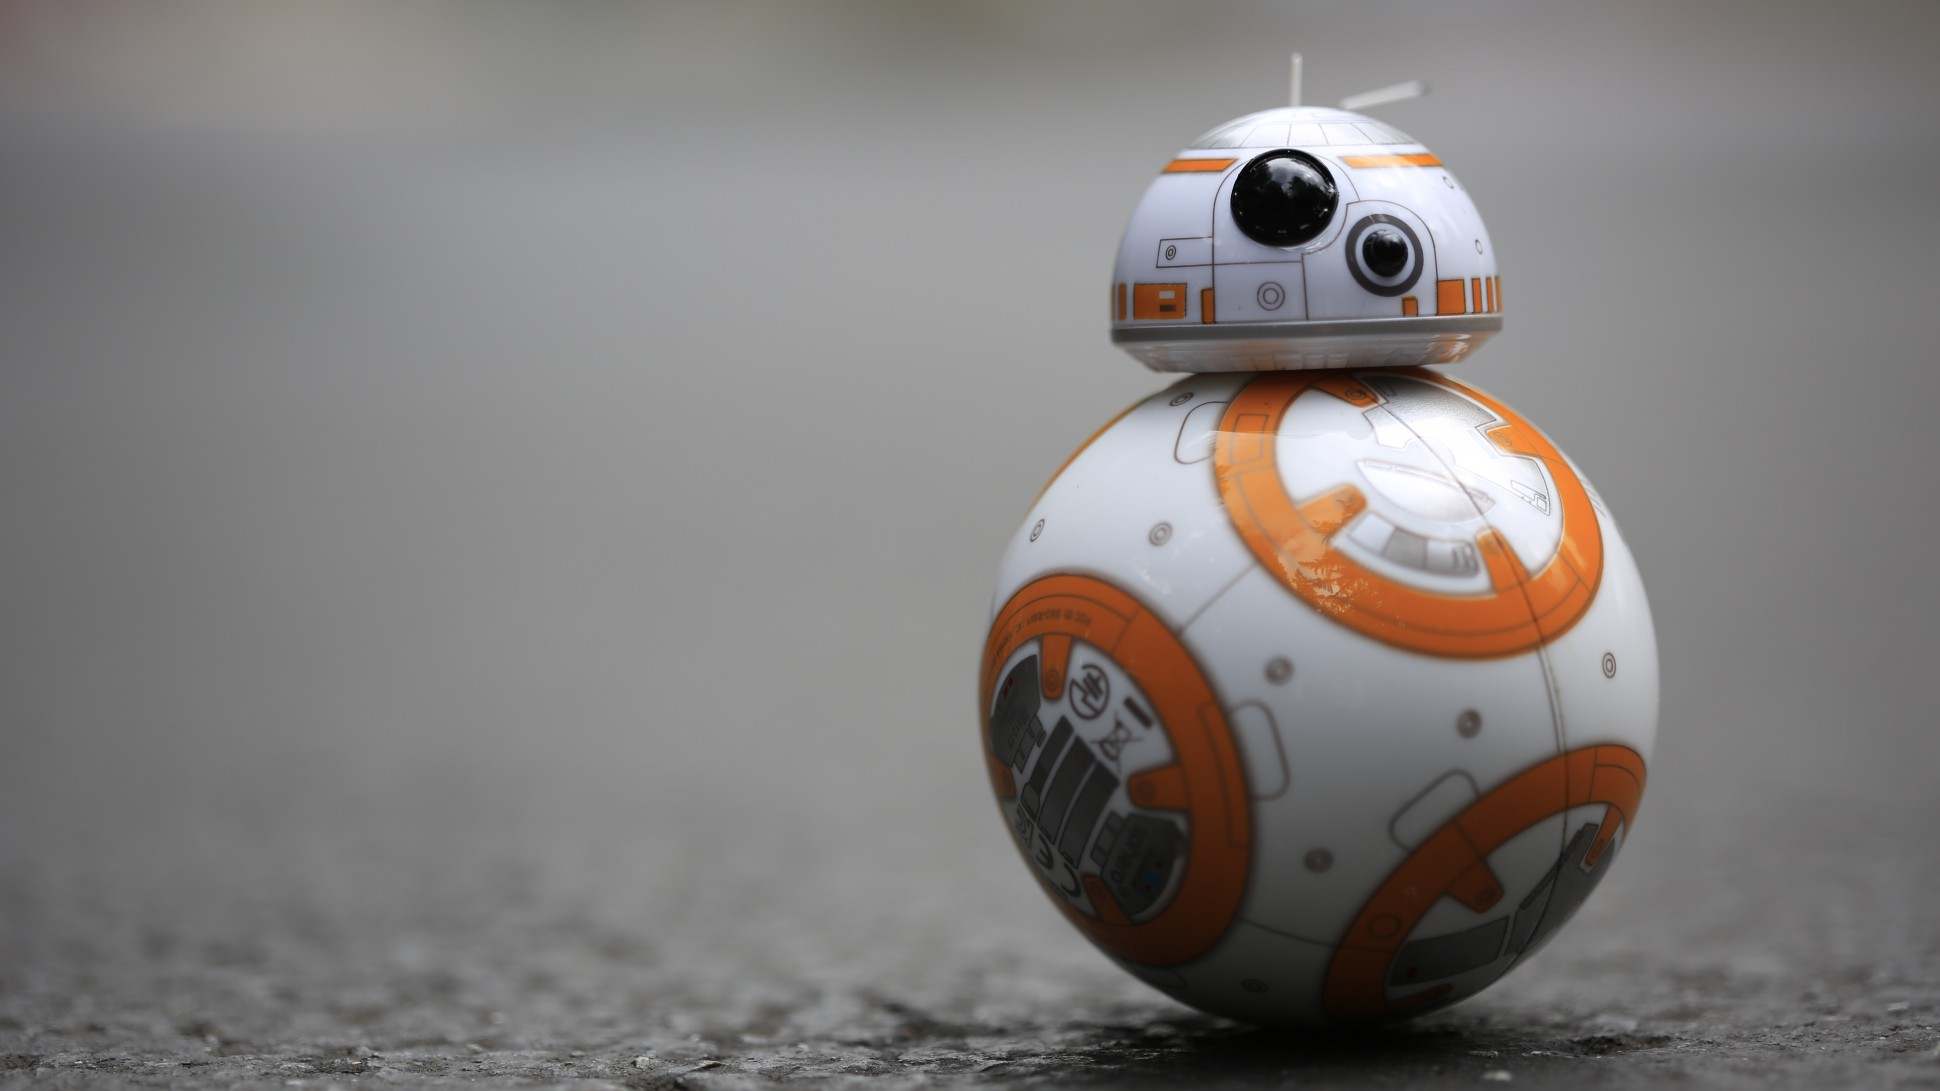 bb8 wallpaper hd - photo #9